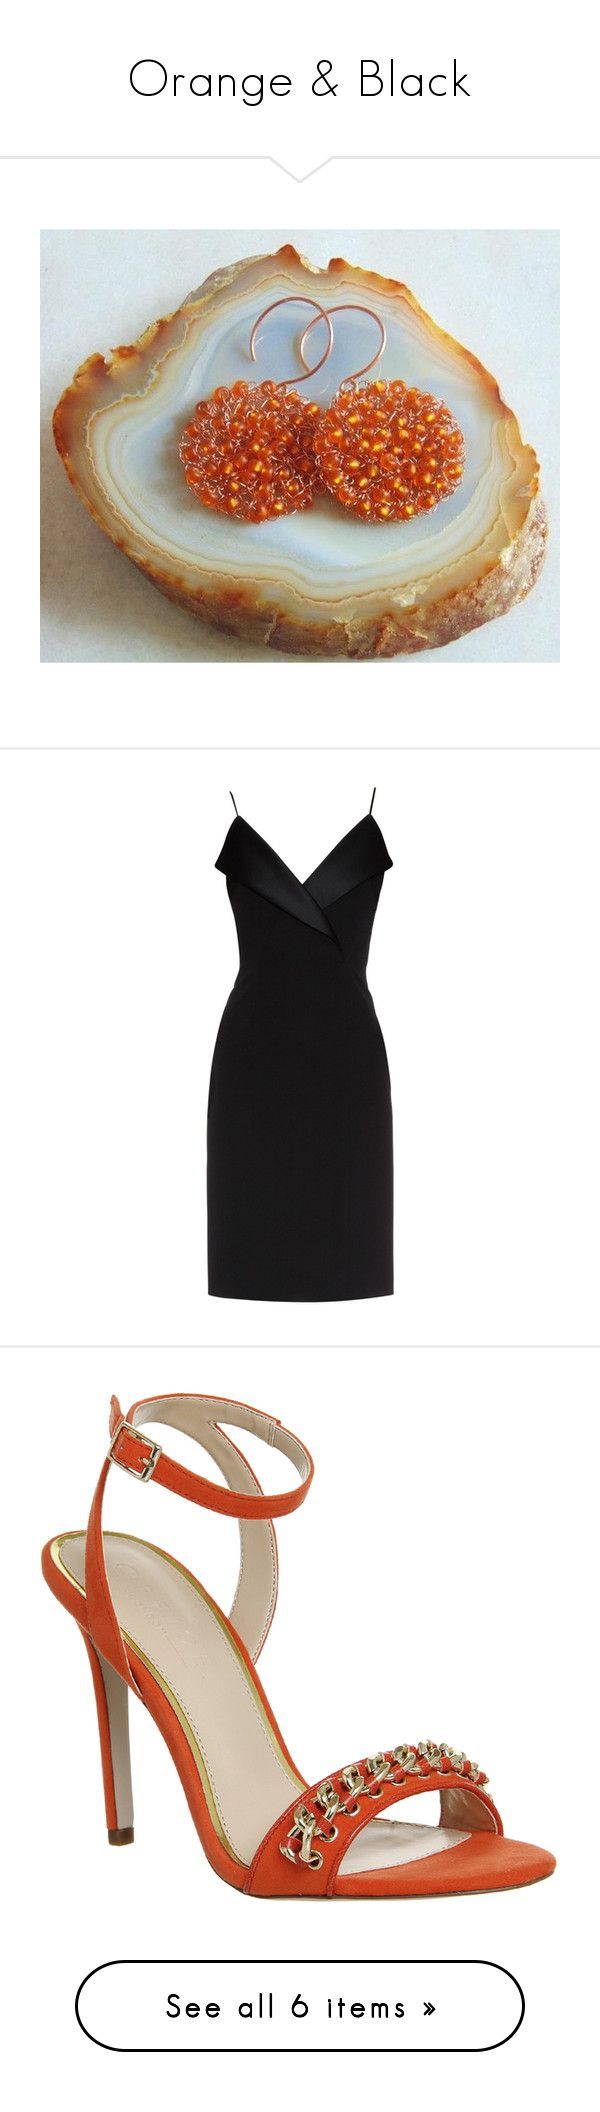 Orange & Black by styledonna on Polyvore featuring women's fashion, jewelry, earrings, dresses, short dresses, vestidos, cocktail dress, black, lbd dress and panel dress